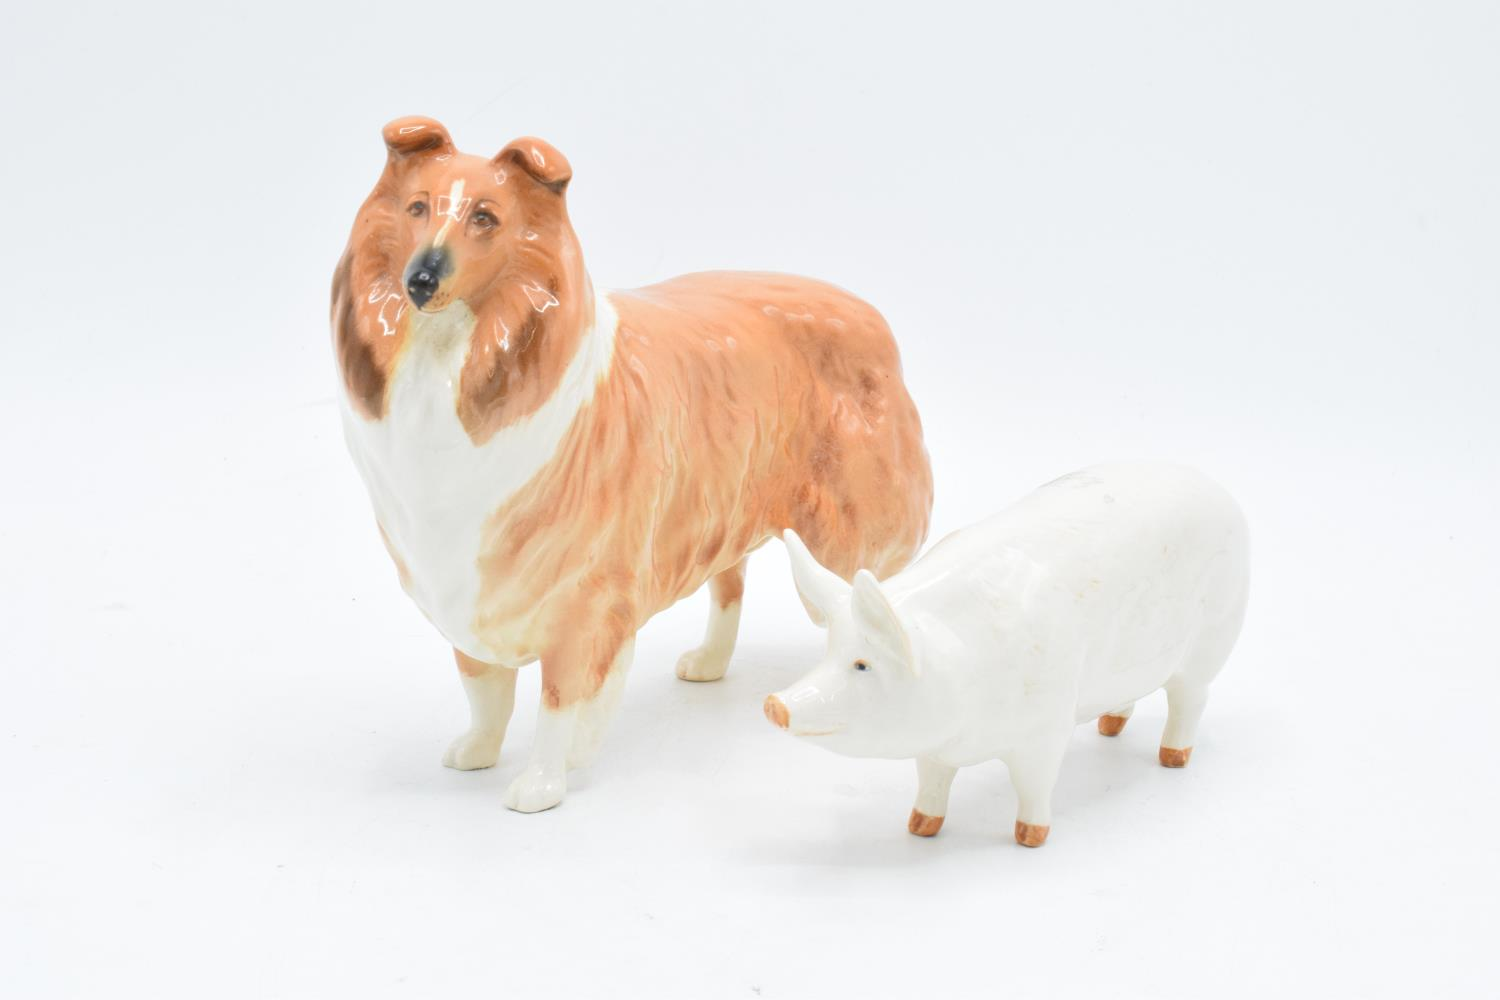 Beswick rough collie Lochinvar of Lady Park together with a pig Ch. Wall Queen 40 (2). In good